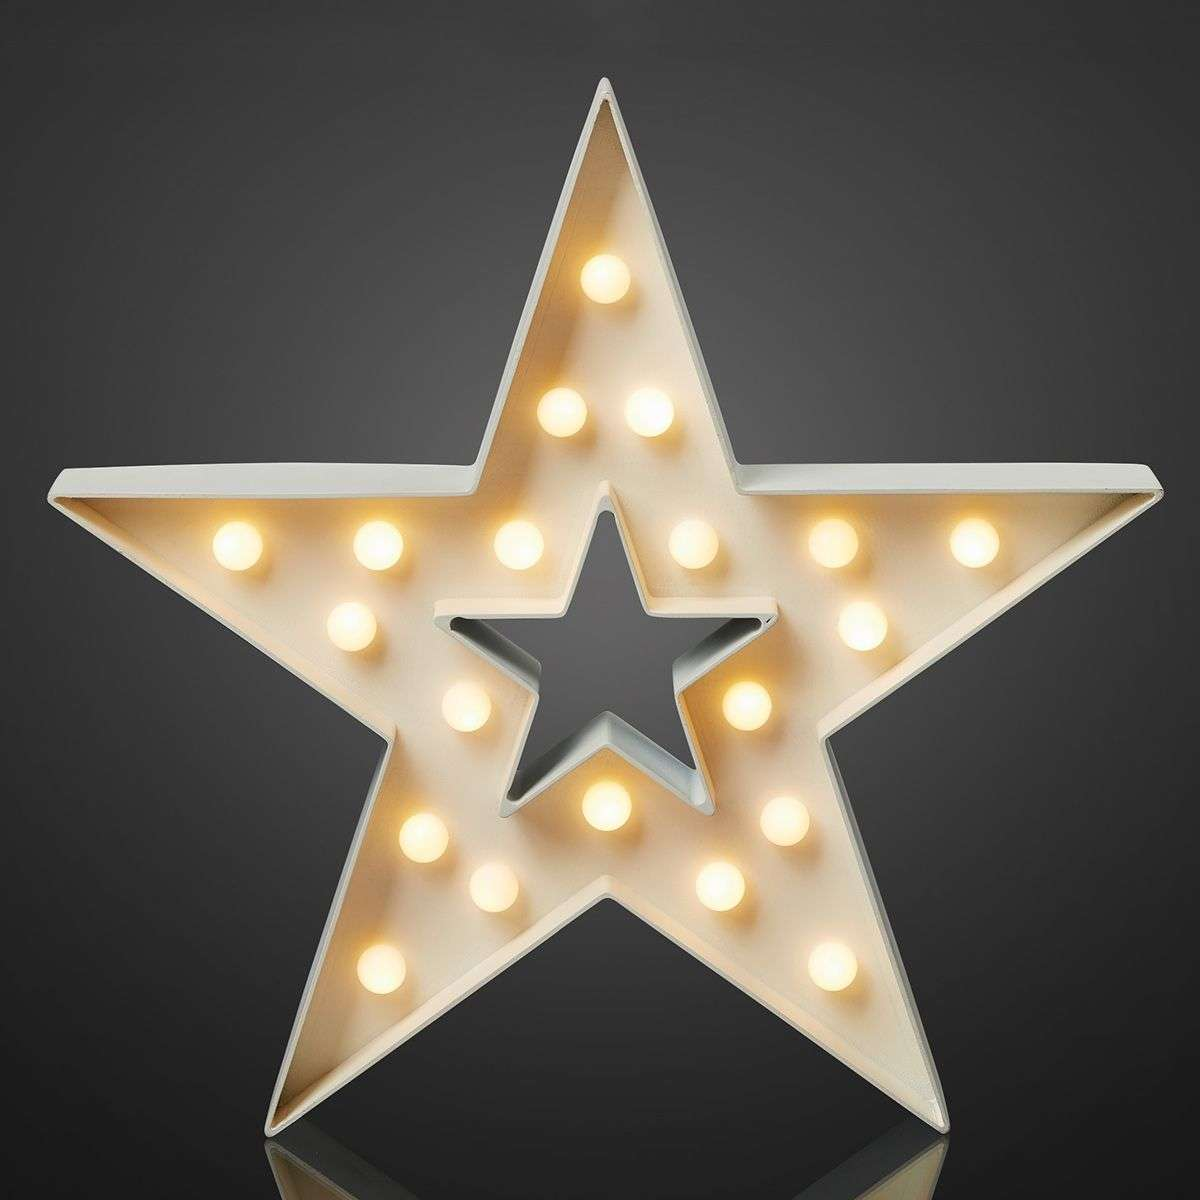 White Star LED Decorative Light